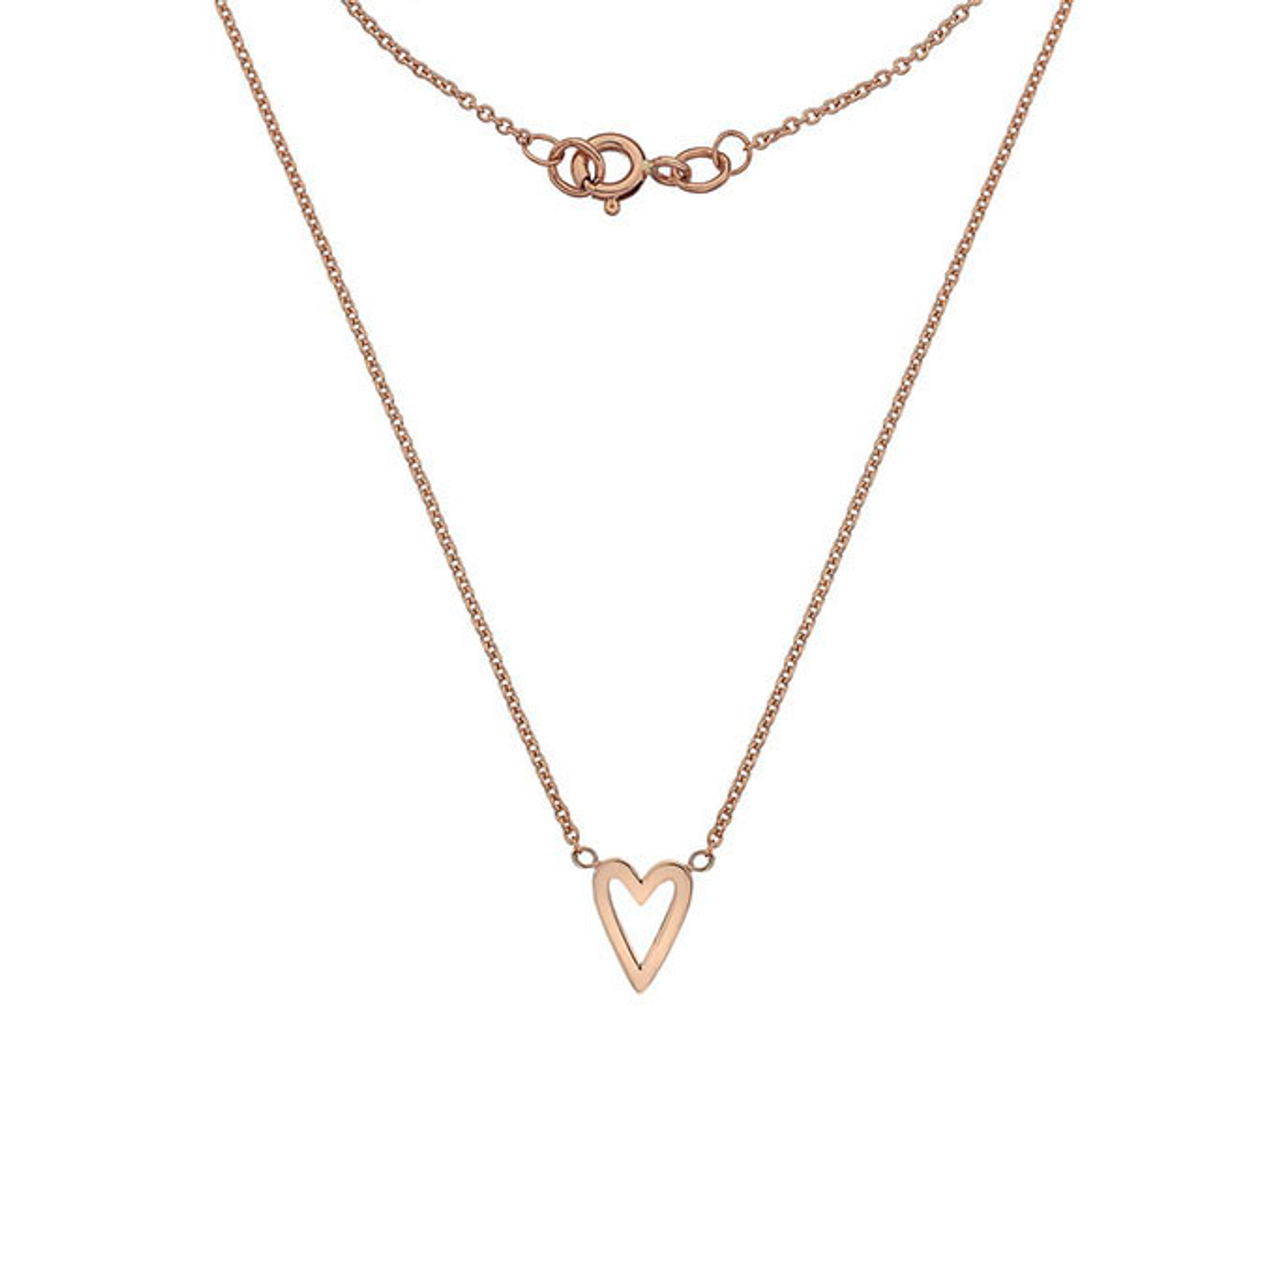 9ct Rose Gold long Heart Pendant on Chain